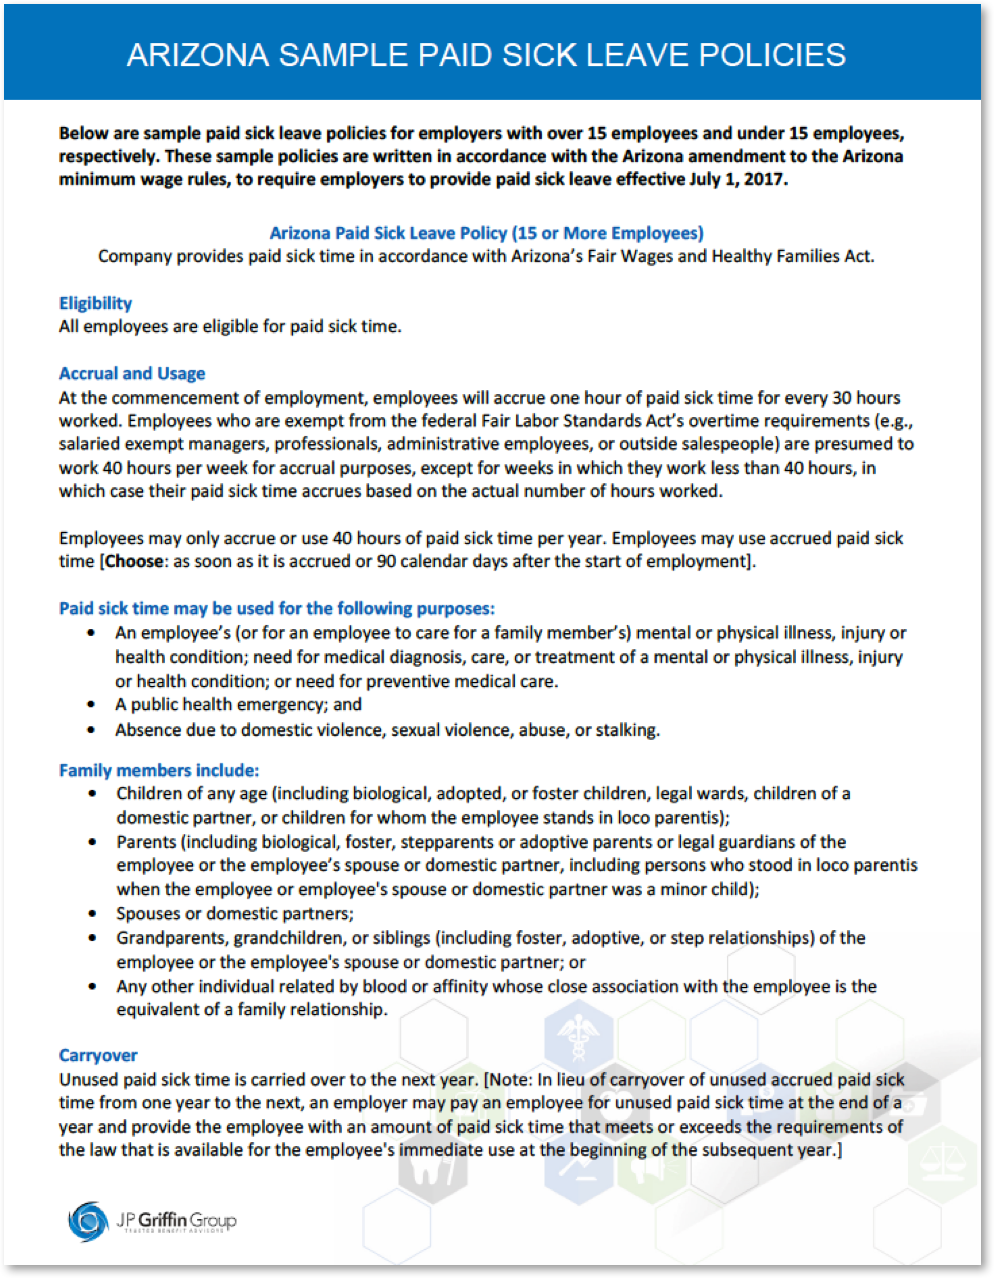 Arizona_Sample_Paid_Sick_Leave_Policies_JPGriffin_Group_7_27_2017.png